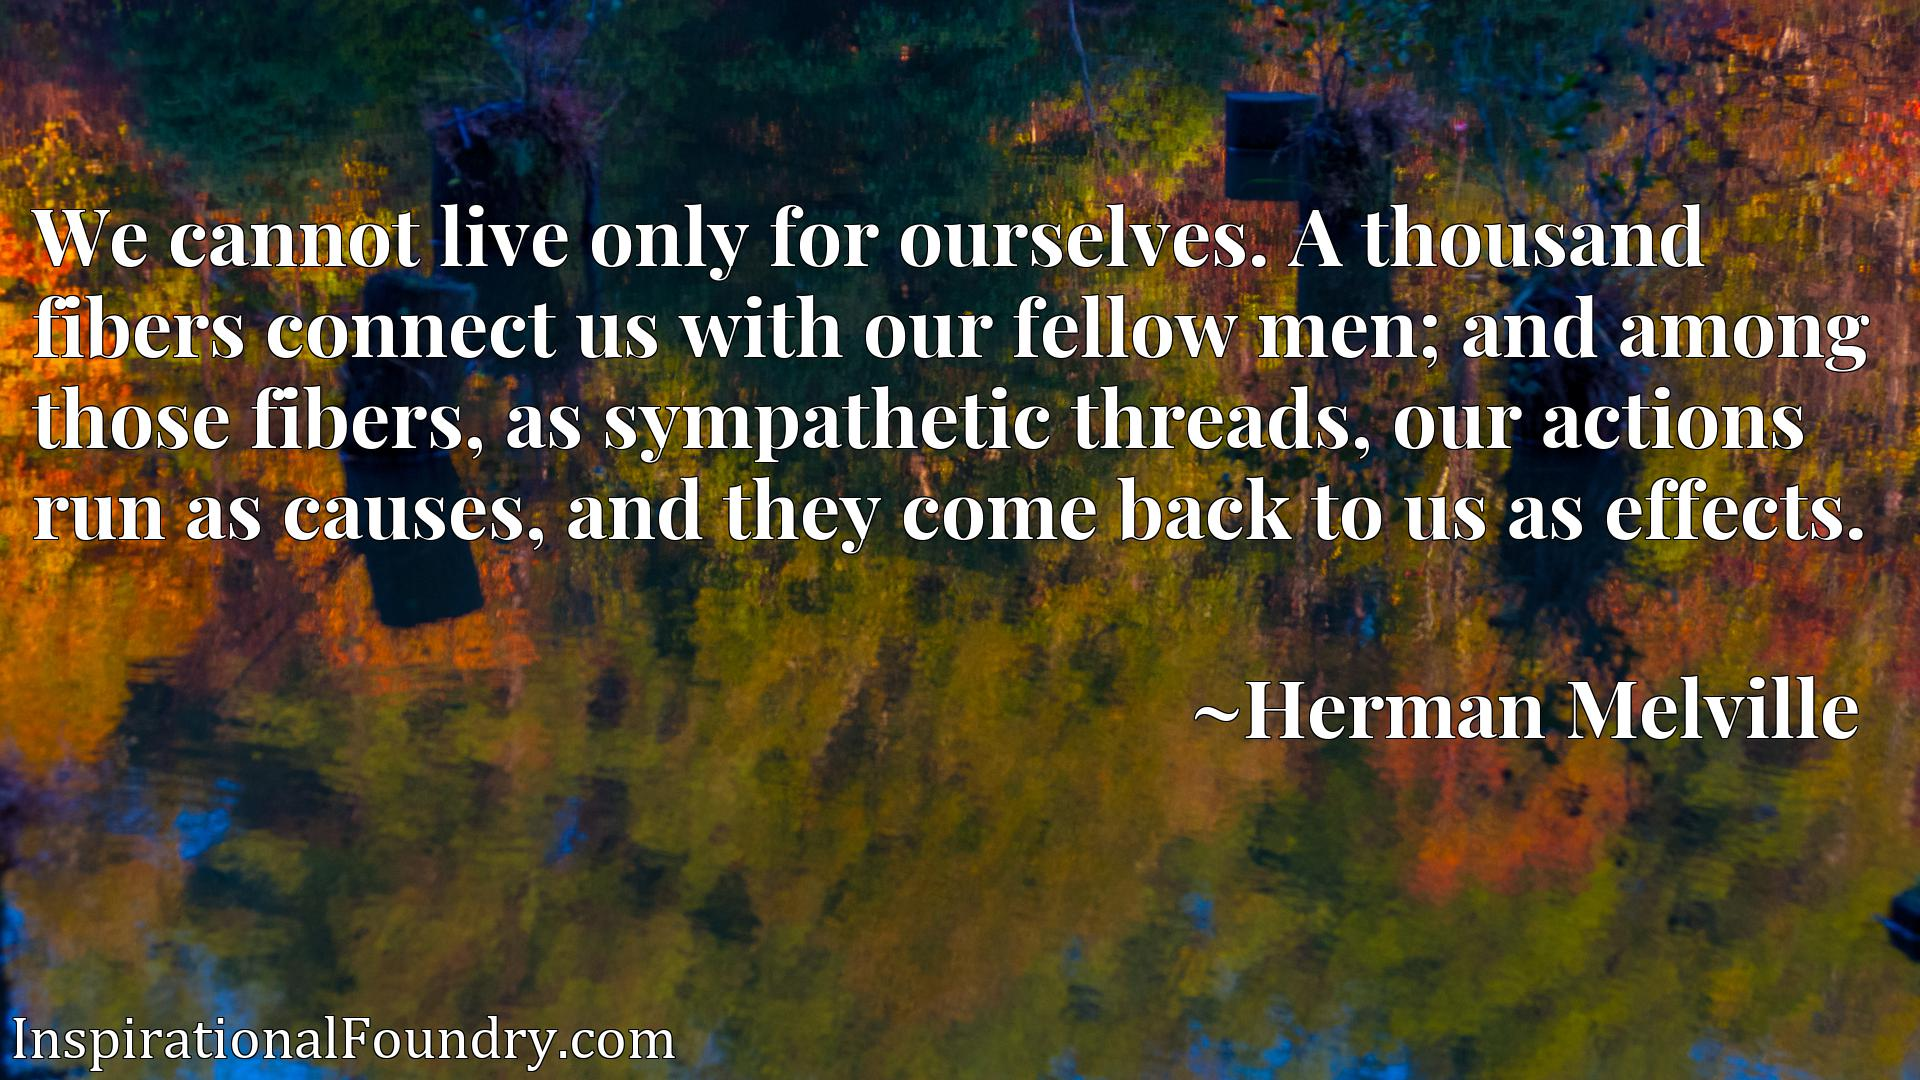 We cannot live only for ourselves. A thousand fibers connect us with our fellow men; and among those fibers, as sympathetic threads, our actions run as causes, and they come back to us as effects.